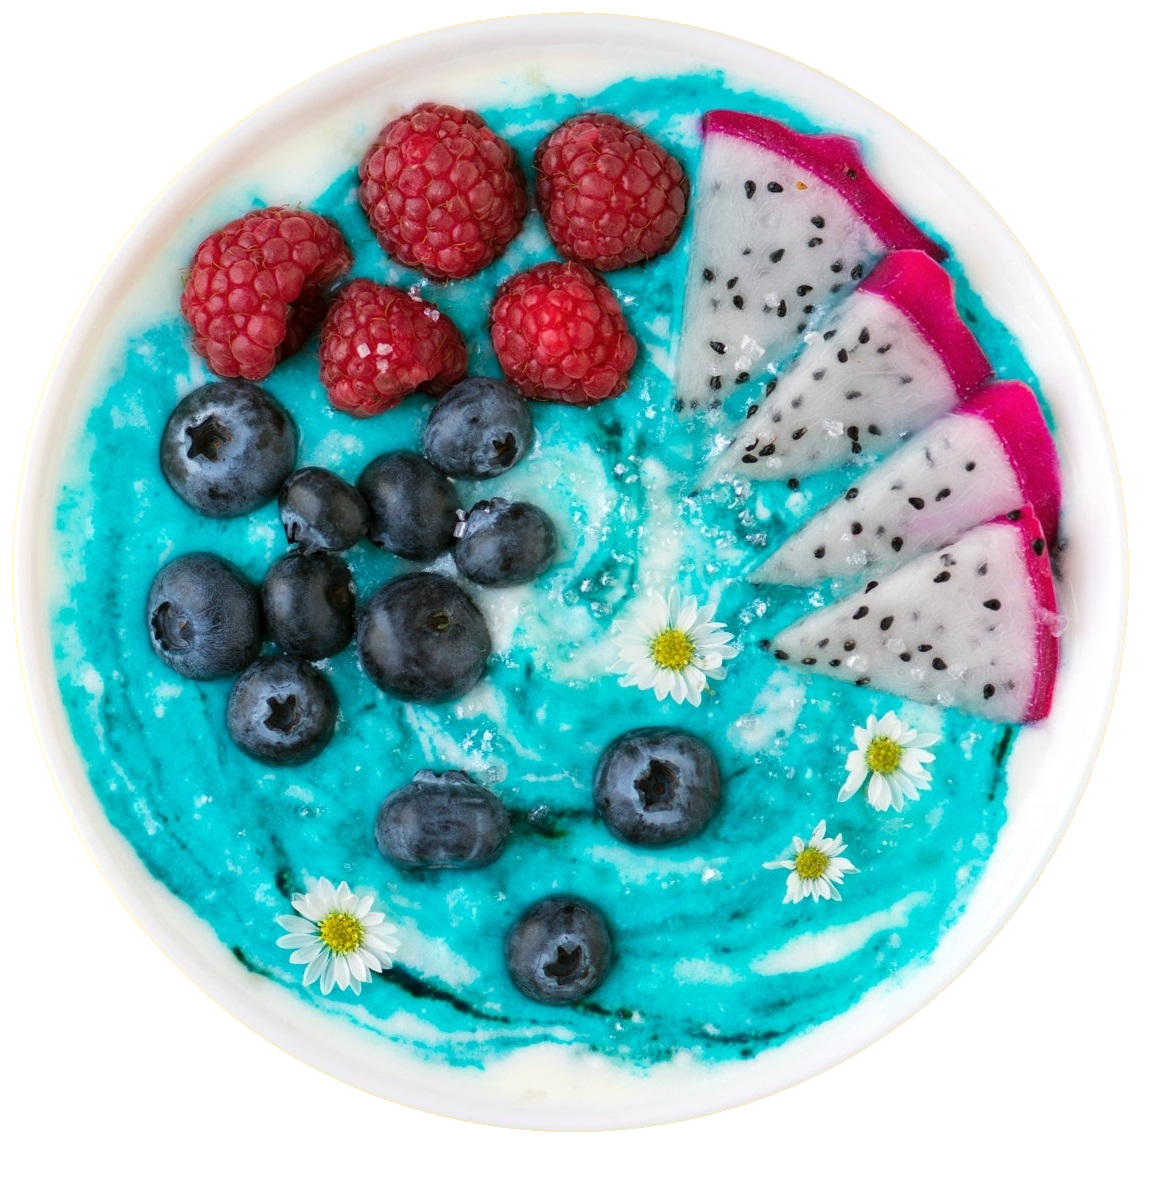 Vibrant blue smoothie bowl made using Smoov's wave blend. It is a vibrant hue of aqua blue, thick and creamy in consistency and topped off with raspberries, blueberries and slices of dragonfruit.